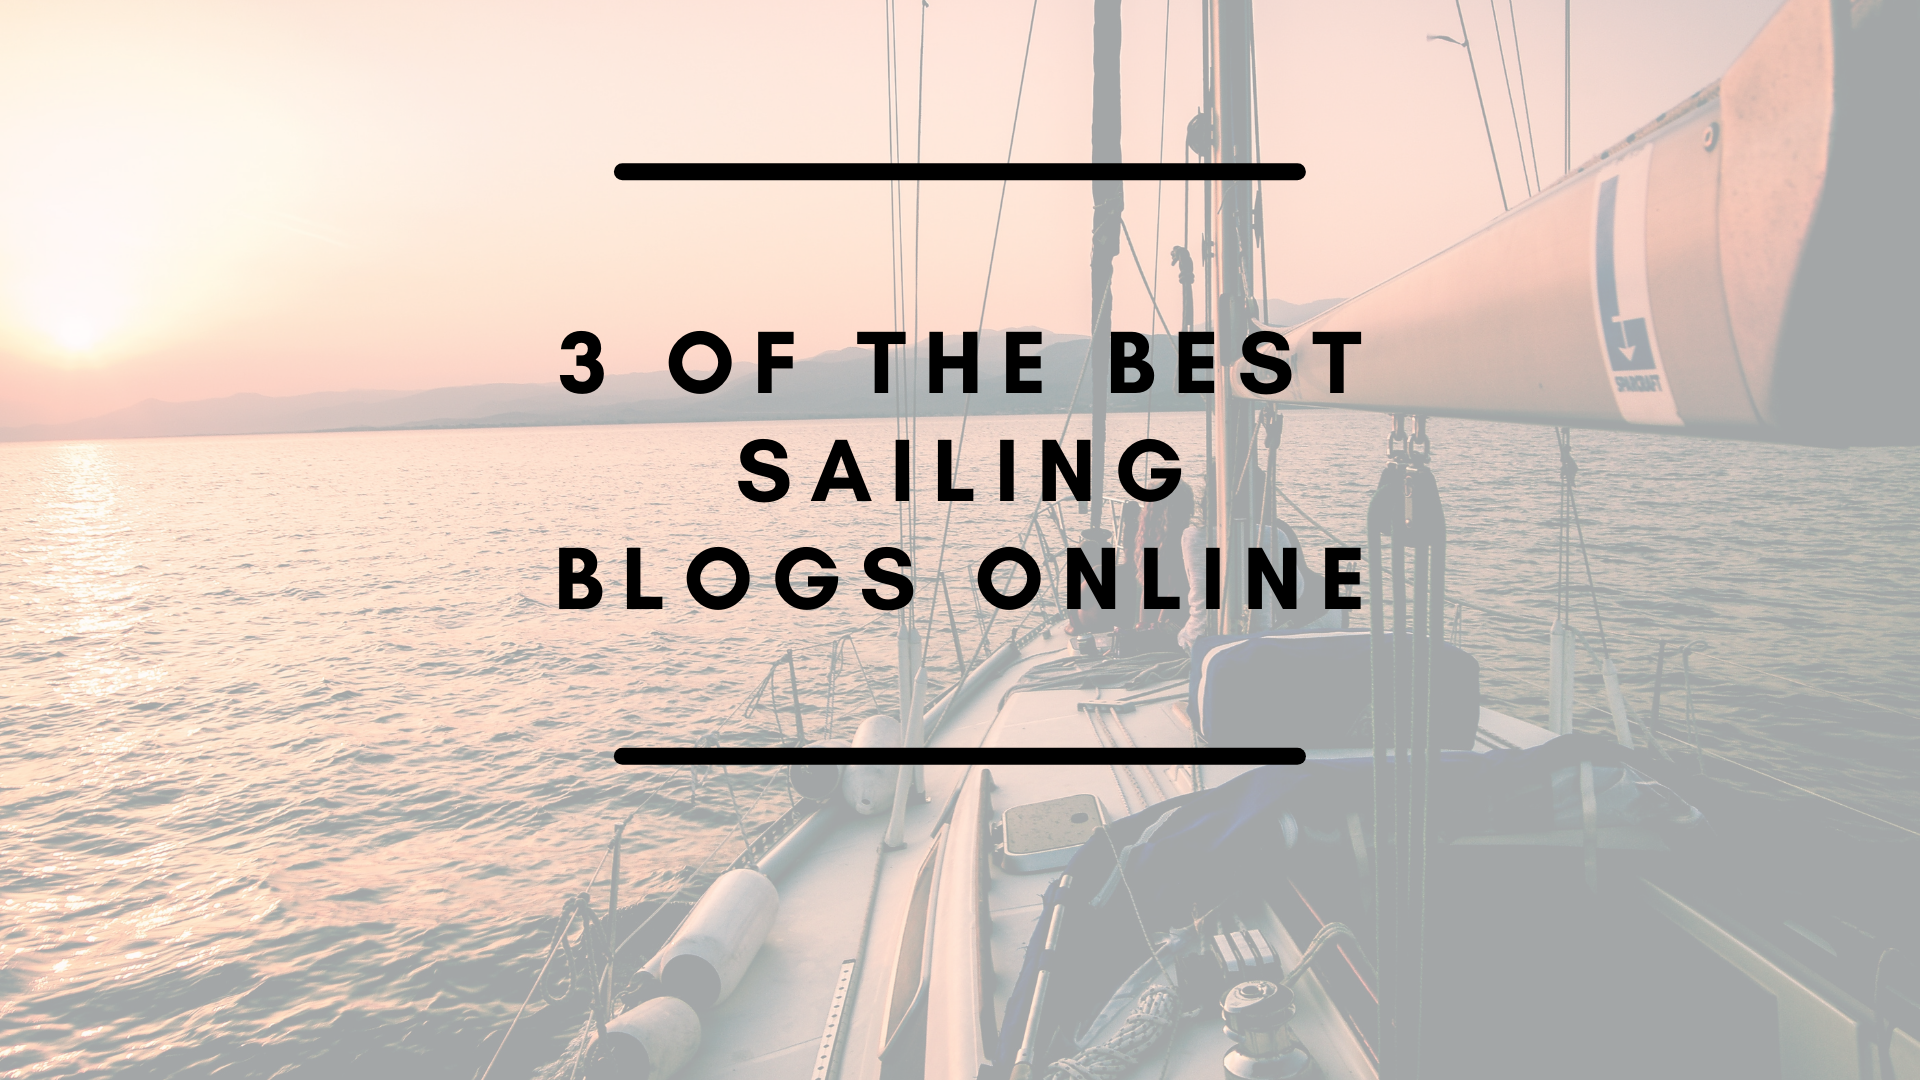 3 OF THE BEST SAILING BLOGS ONLINE